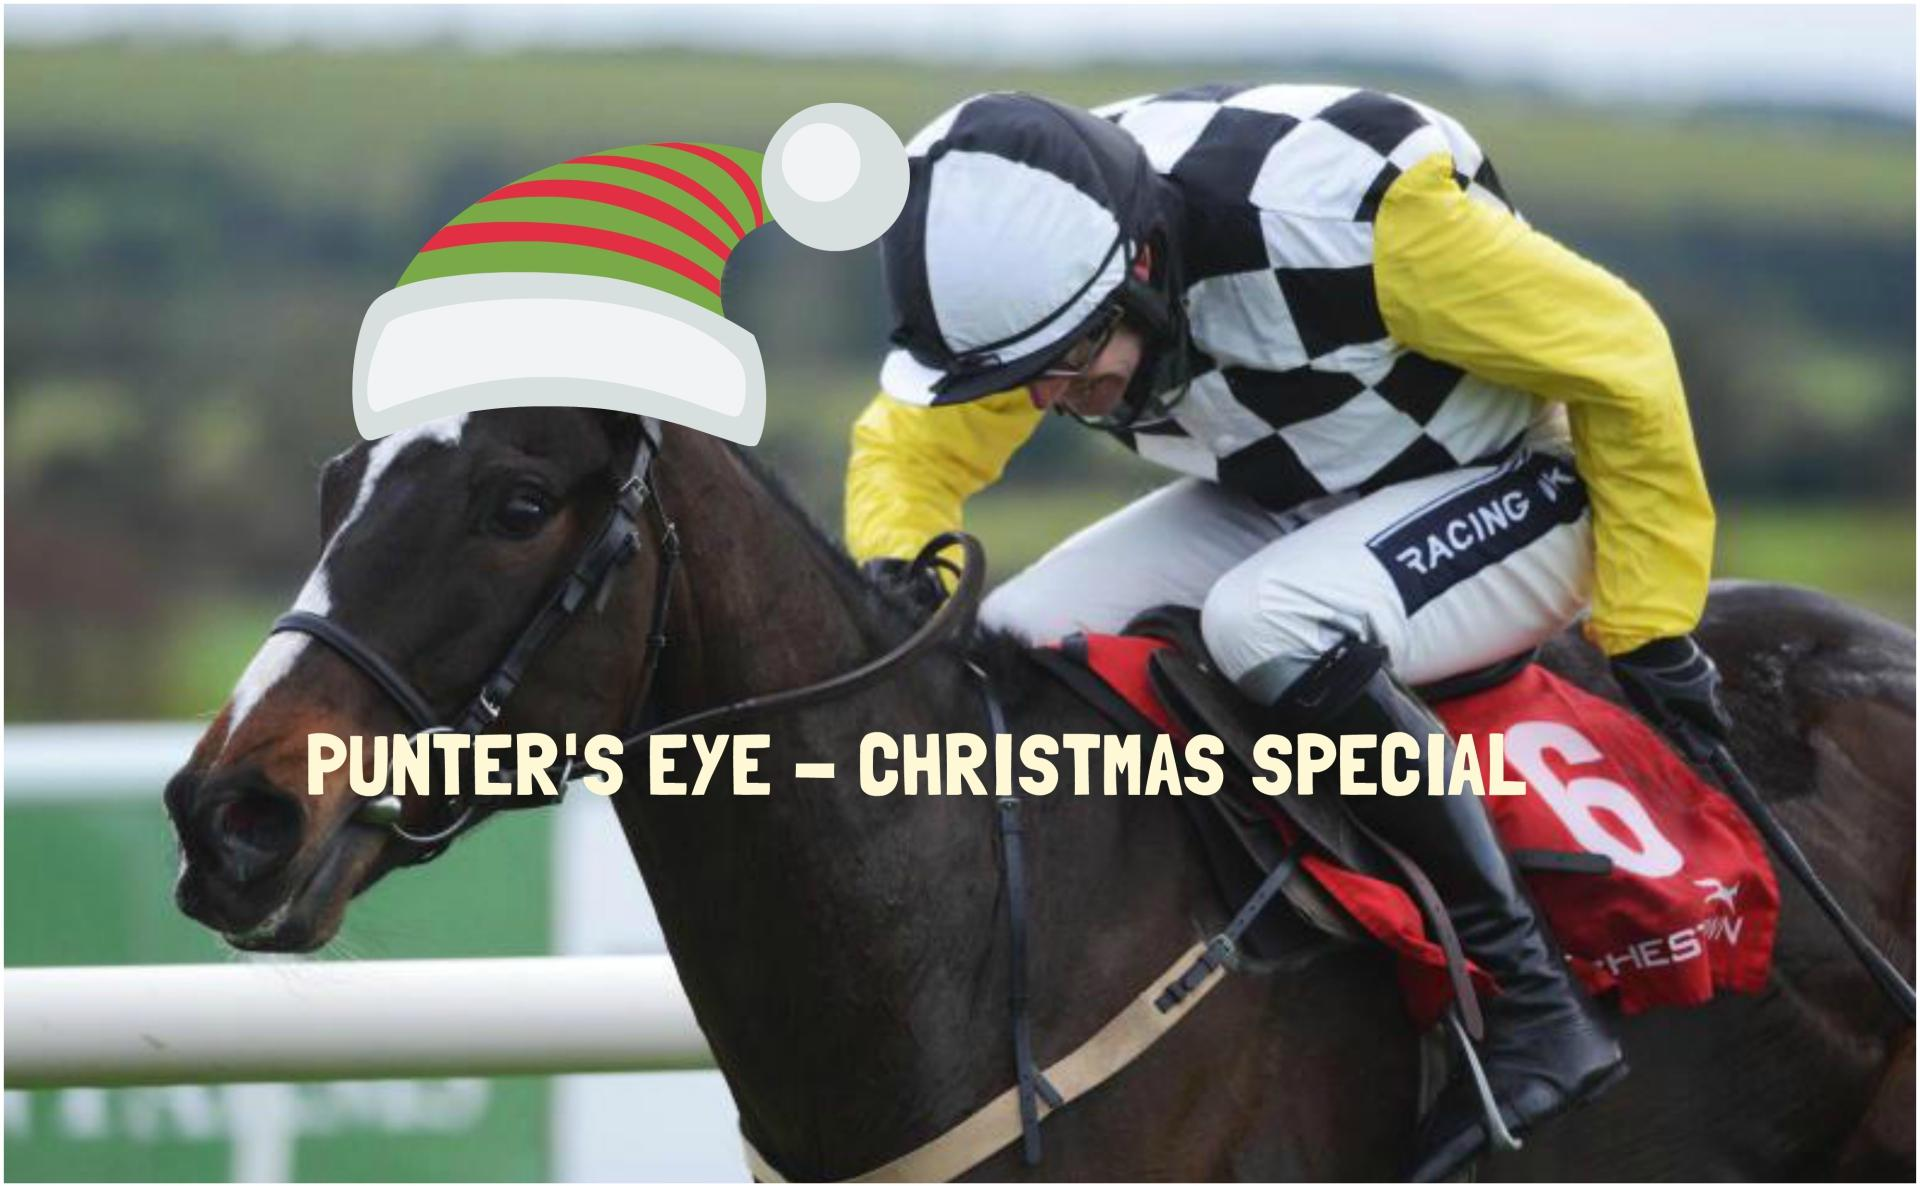 Christmas Horse Racing.The Punter S Eye Horse Racing Tips For The Leopardstown